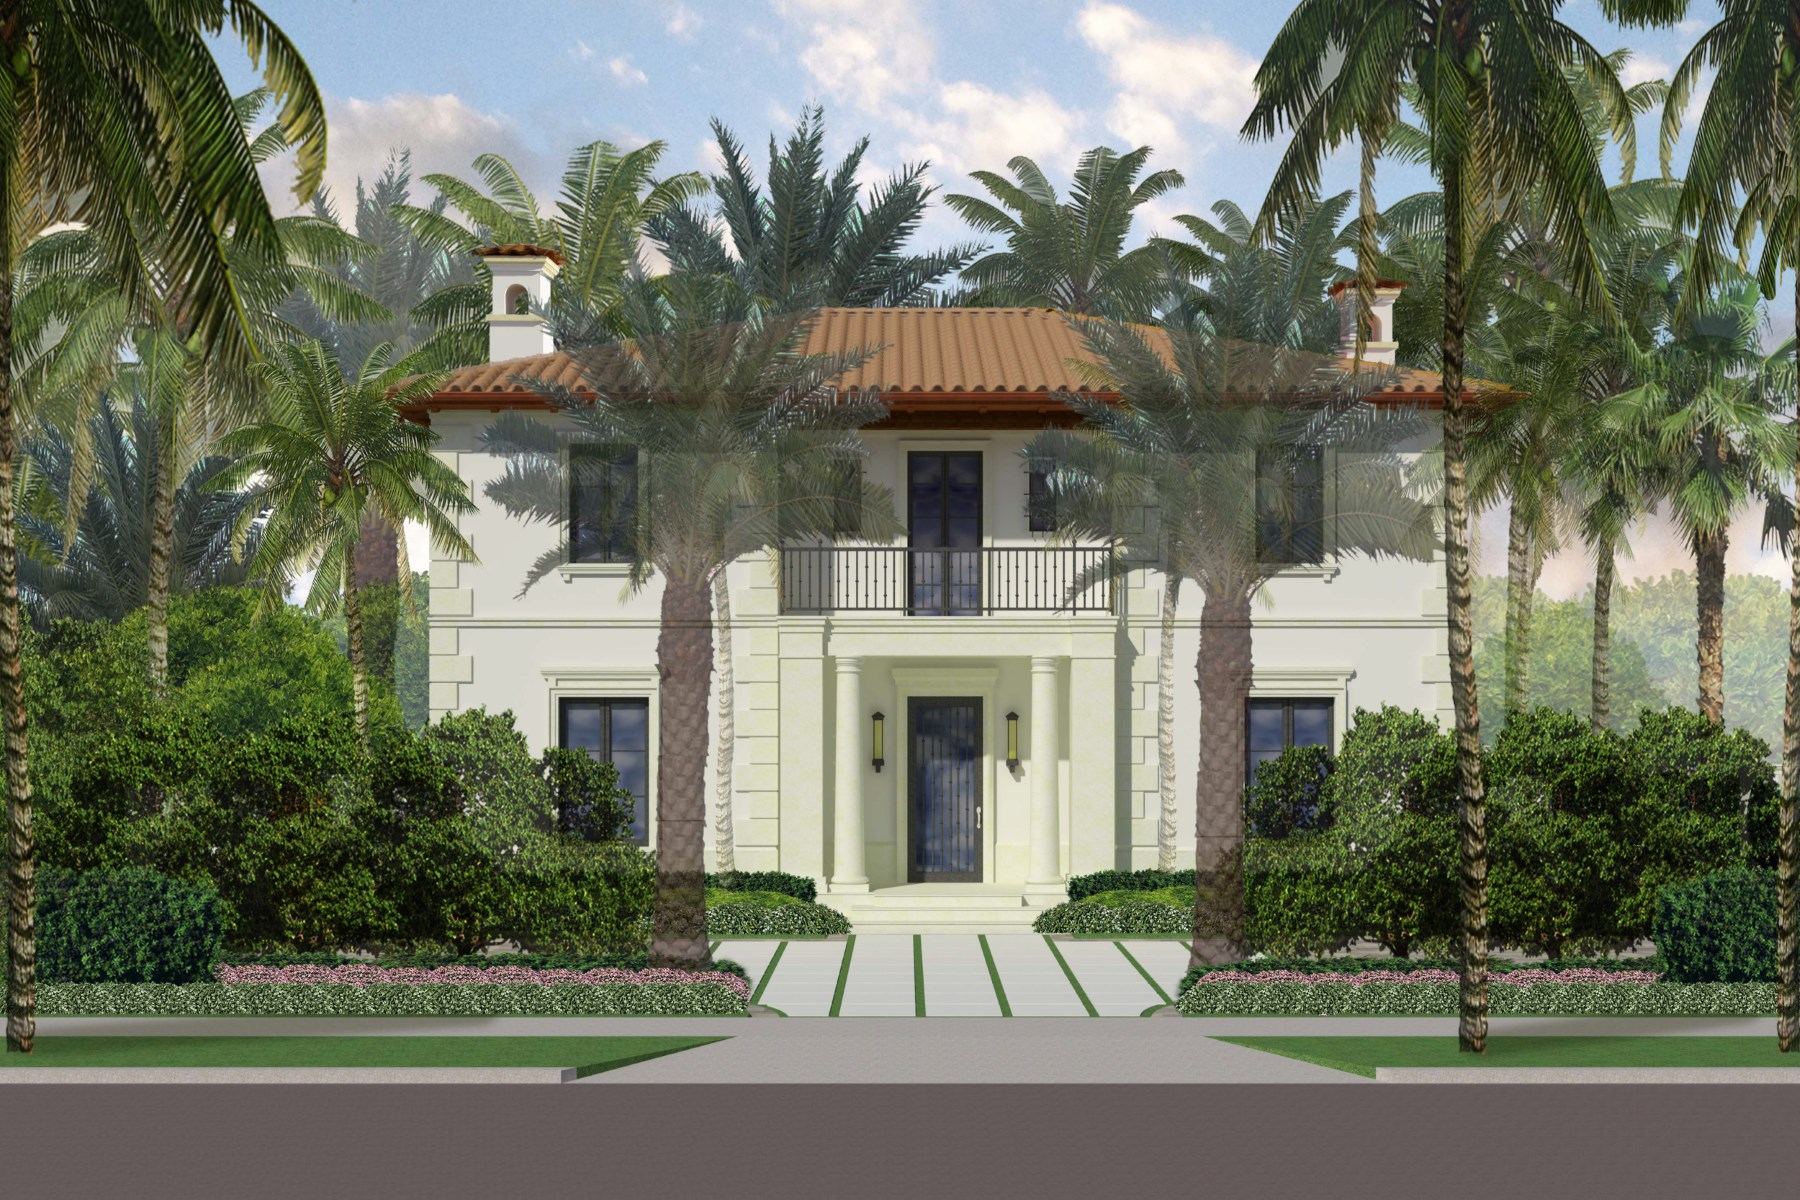 Single Family Home for Sale at Mid-Town Palm Beach New Construction 280 N County Rd North End, Palm Beach, Florida, 33480 United States